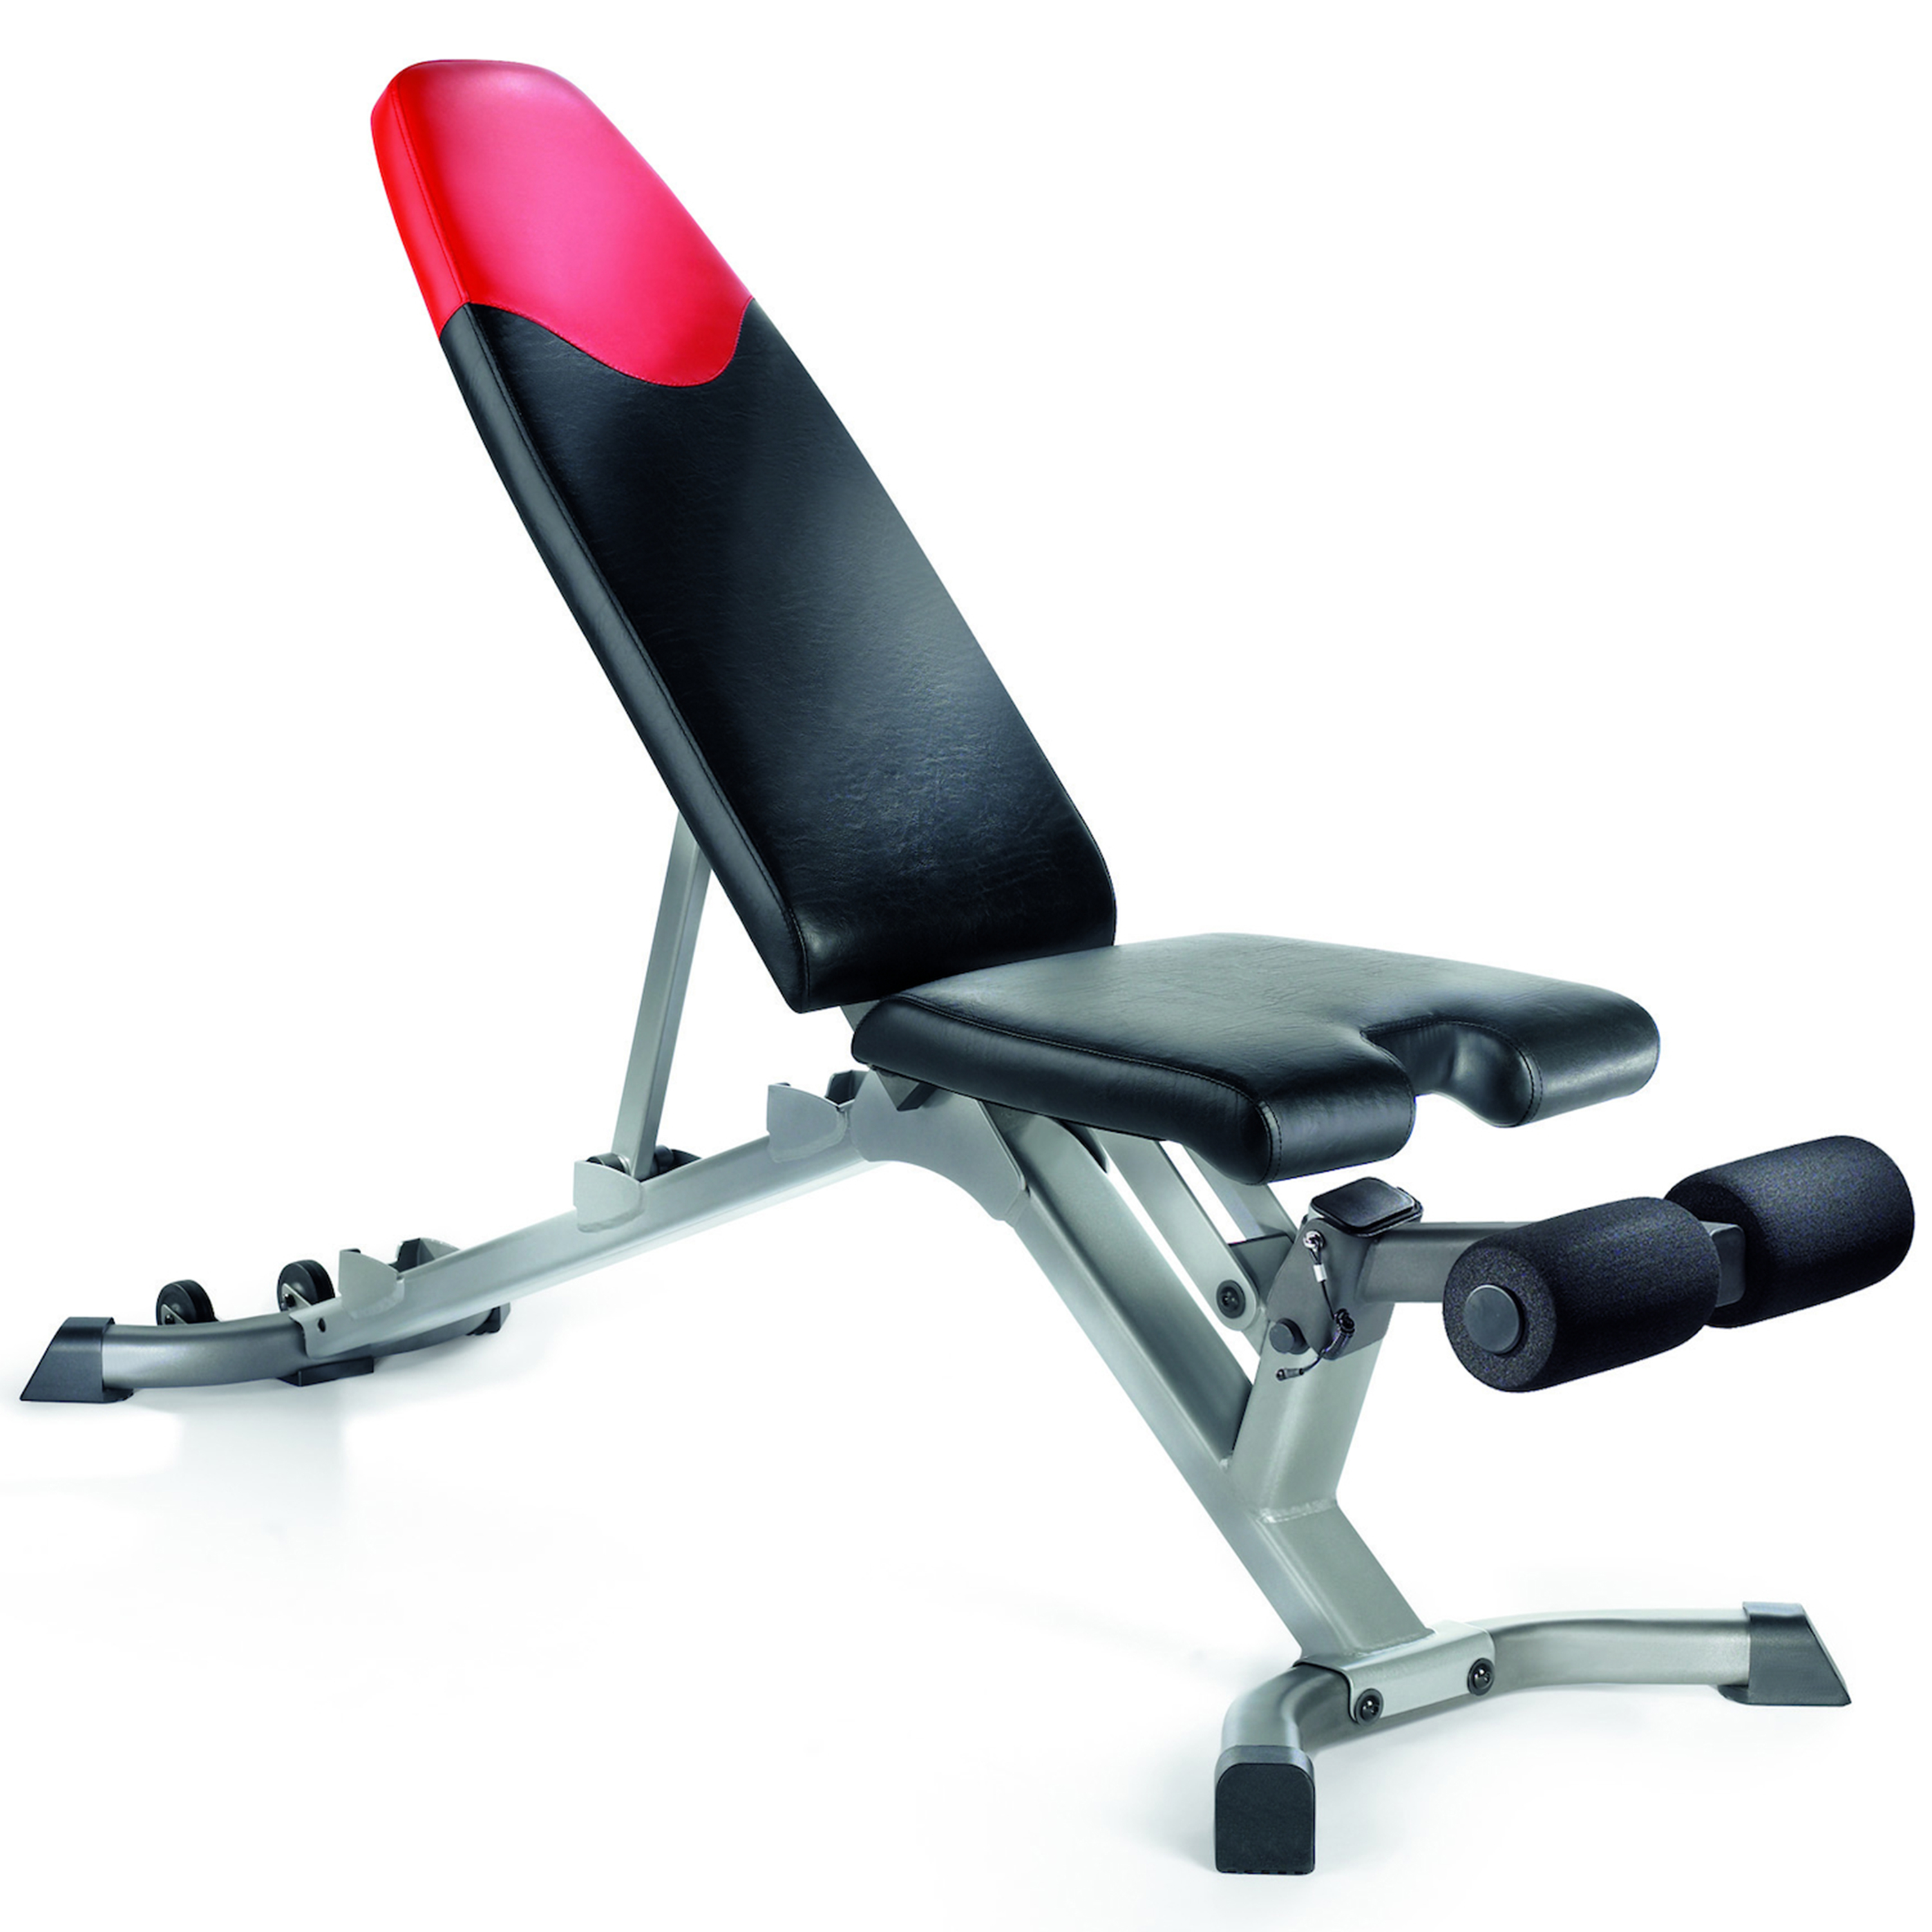 Bowflex 3.1 Adjustable Bench Adjusts to 4 Positions